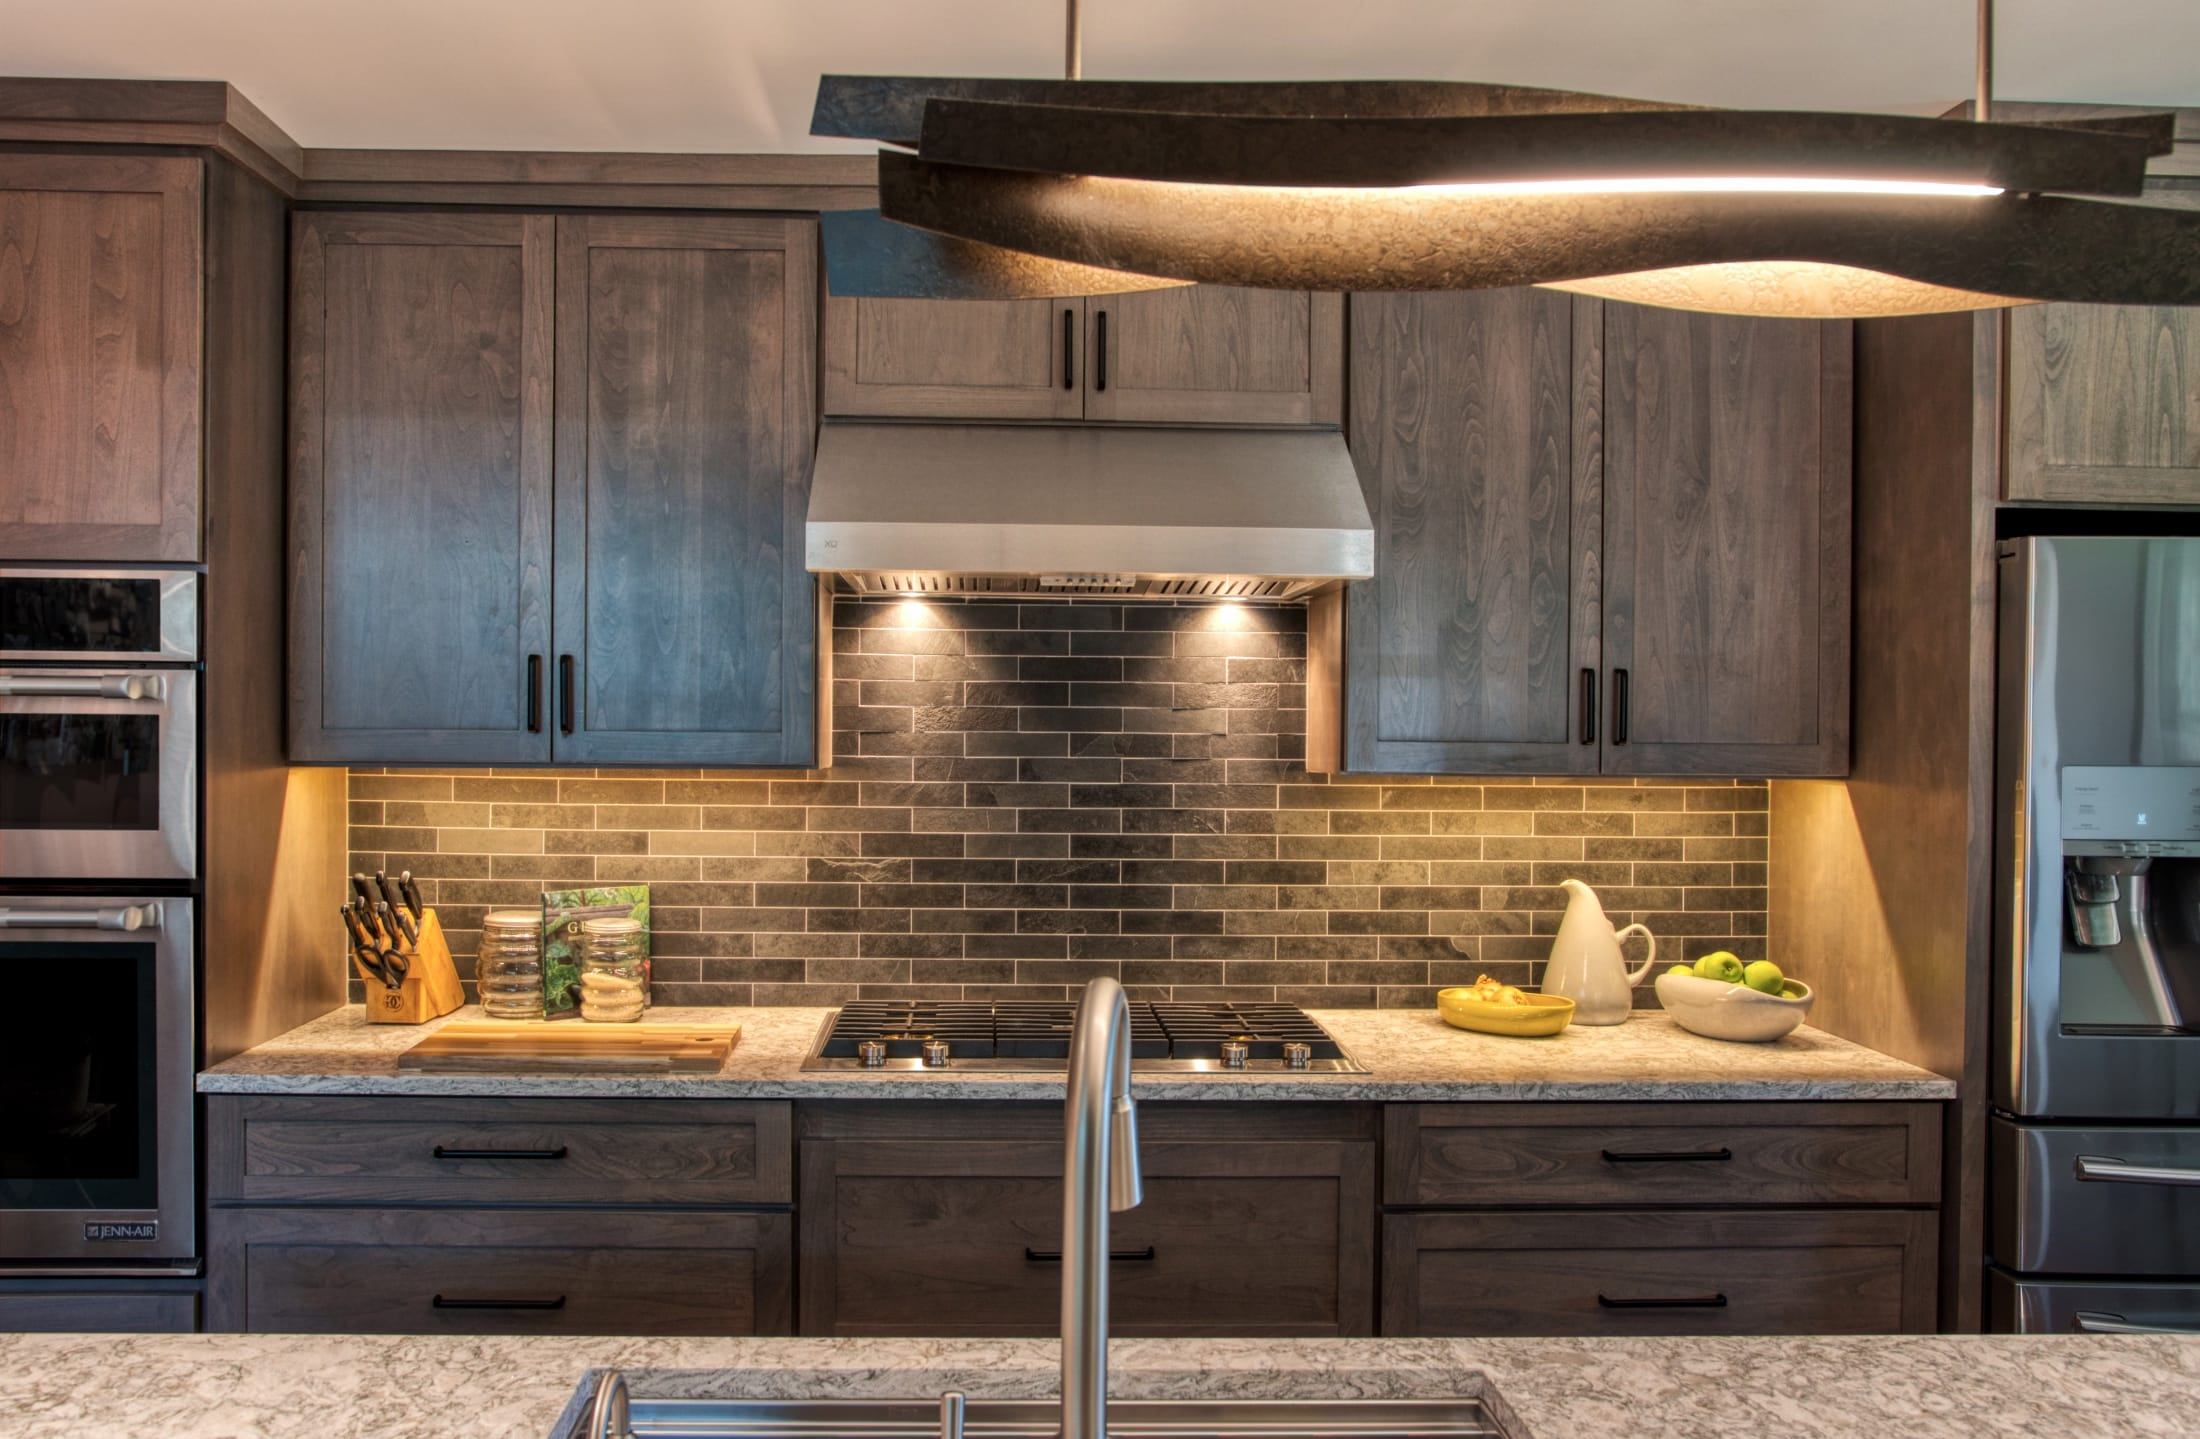 Sculptural Island lighting complements other earthy tones in this kitchen